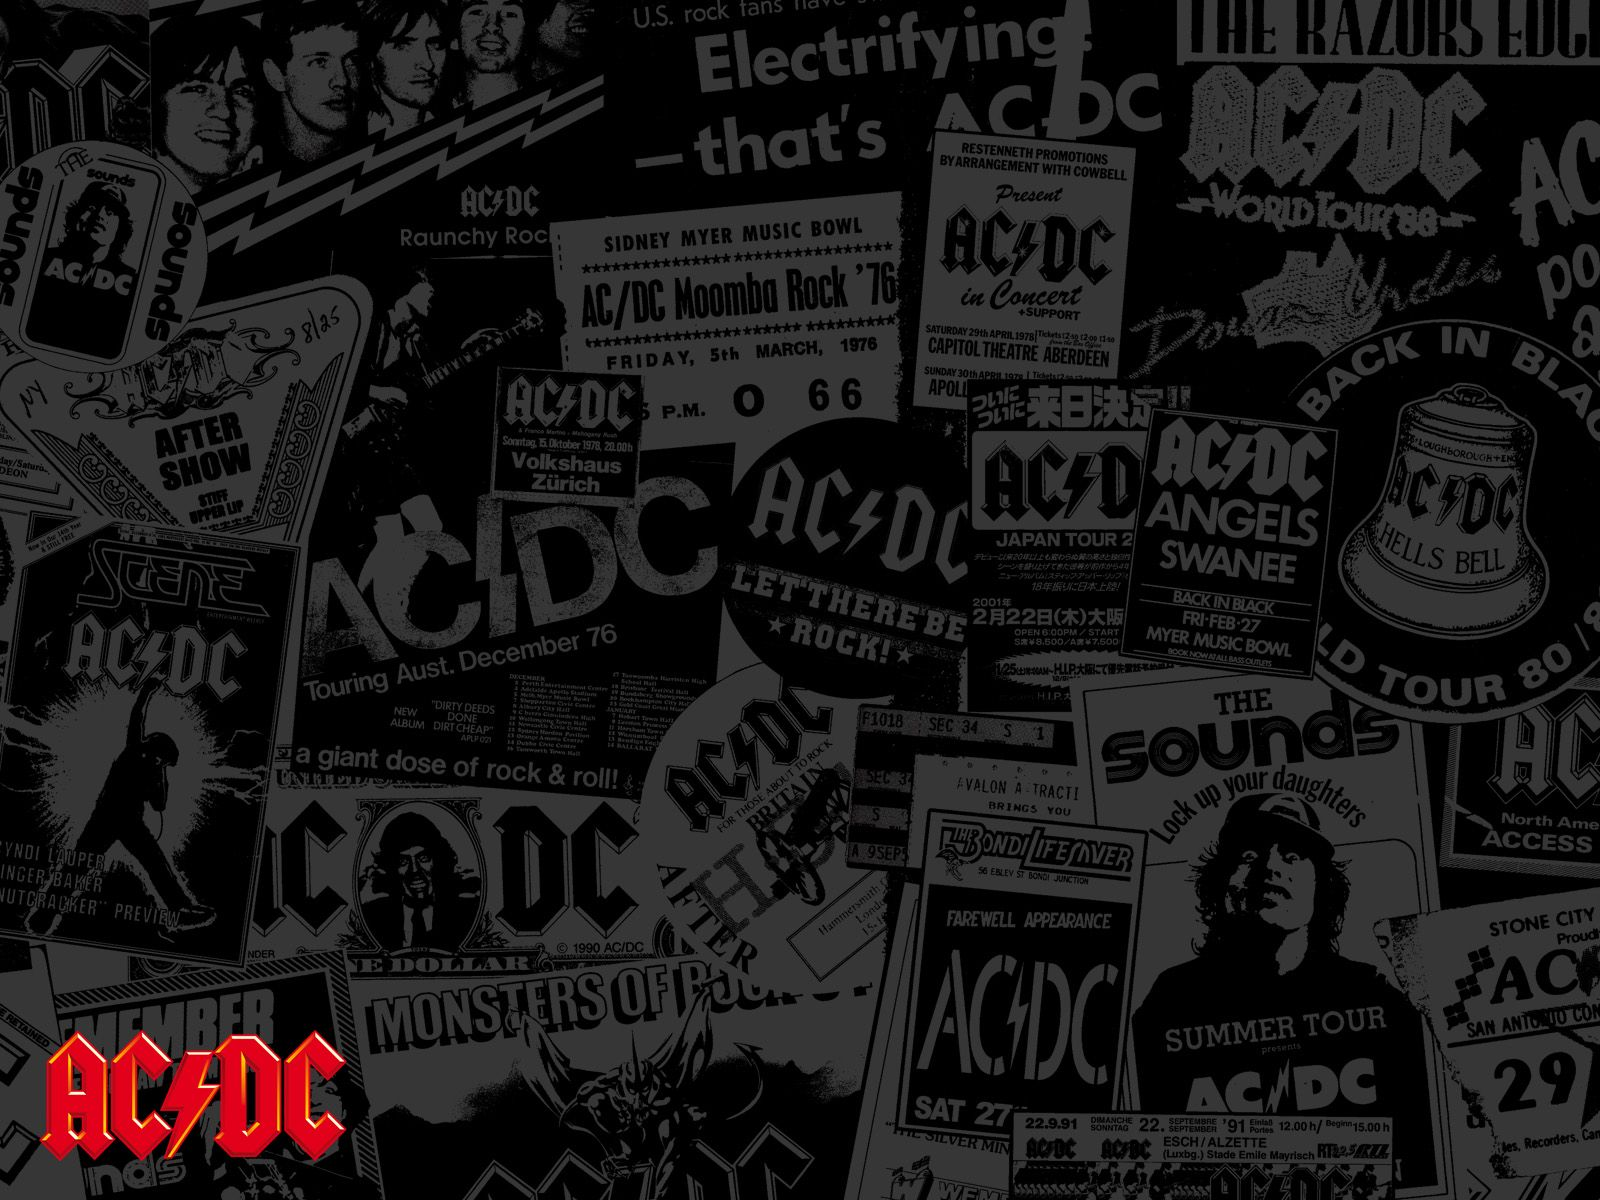 Megapost] Wallpapers AC/DC | Tela pc, Sonserina, Fundos